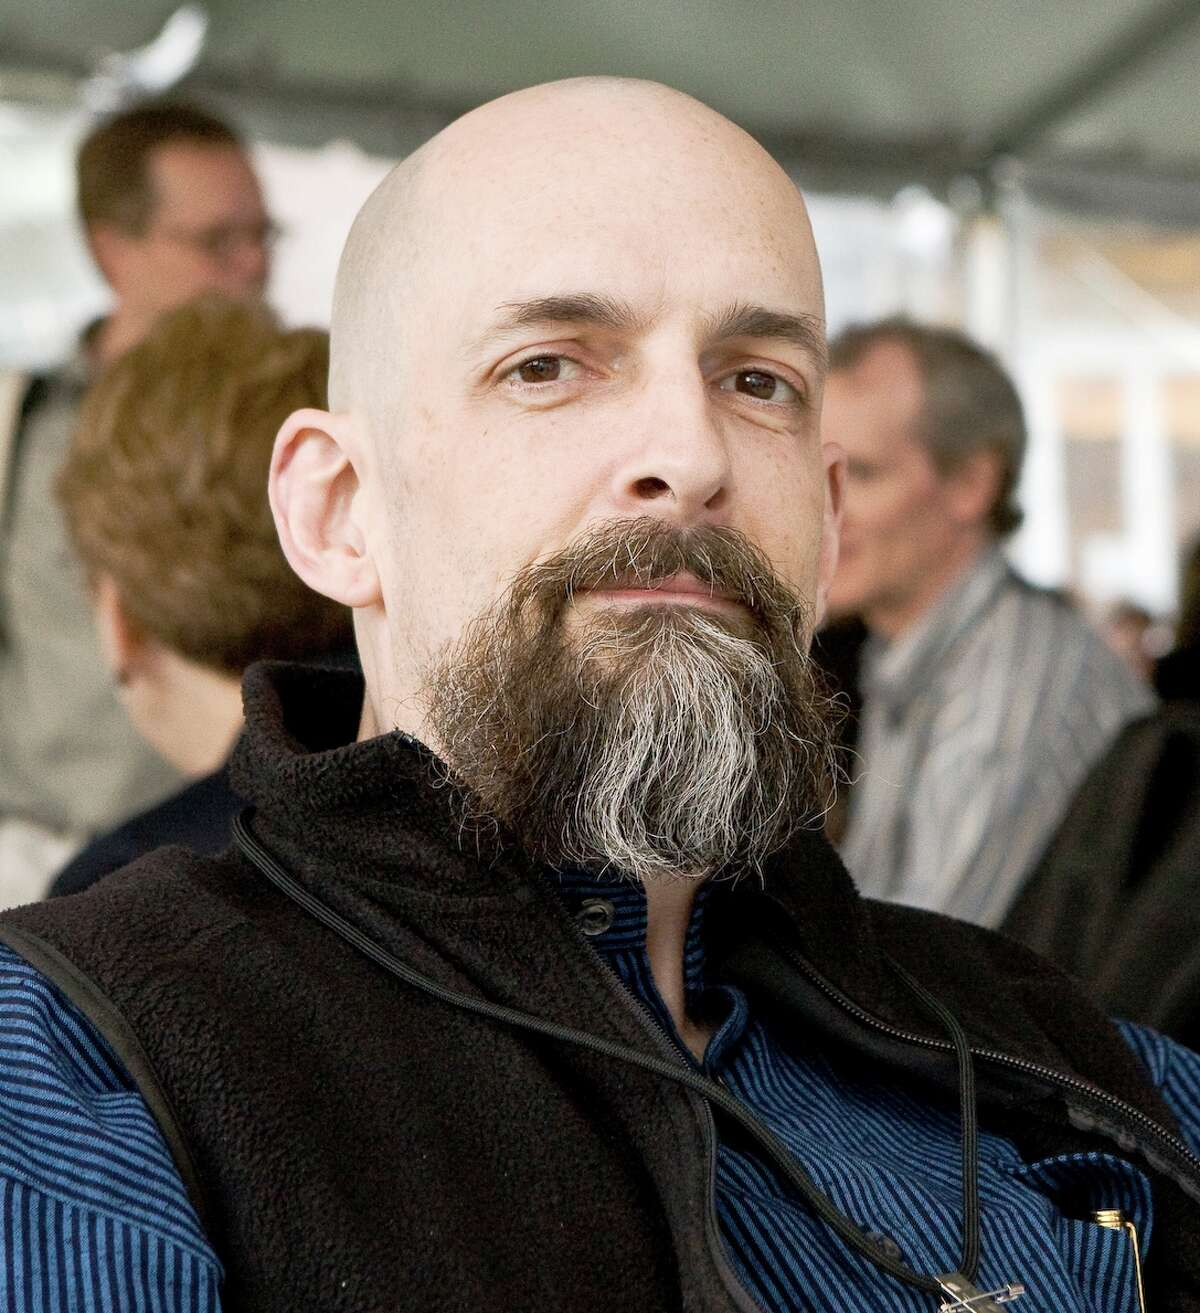 Neal Stephenson: Stephenson is the author of more than a dozen books of a futuristic sci-fi variety, but got his big break with a book called